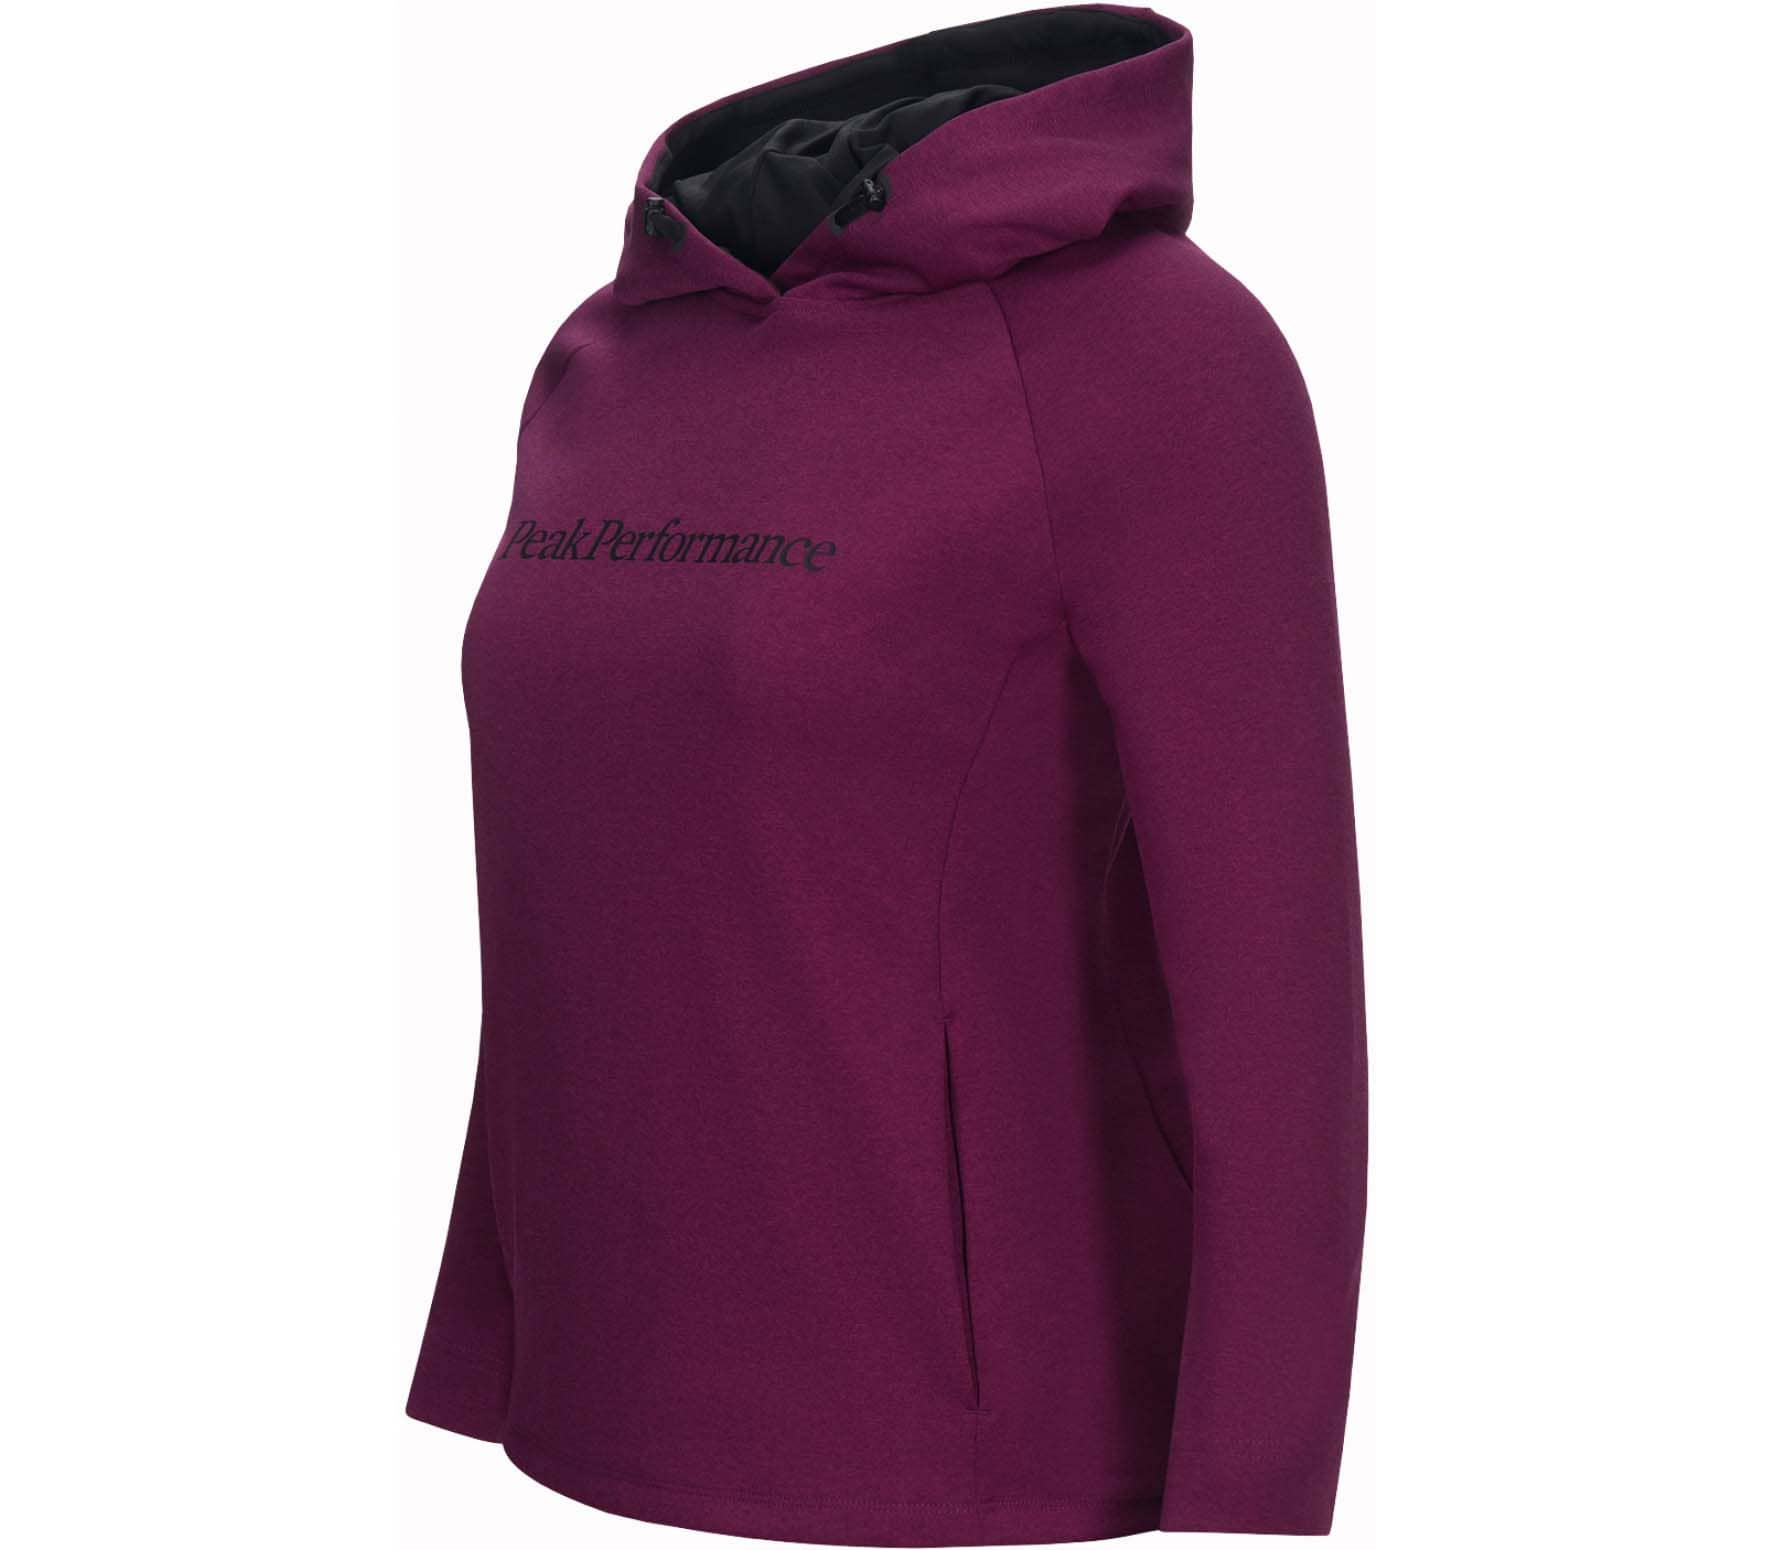 Peak Performance - Pulse women's functional hoodie (red)